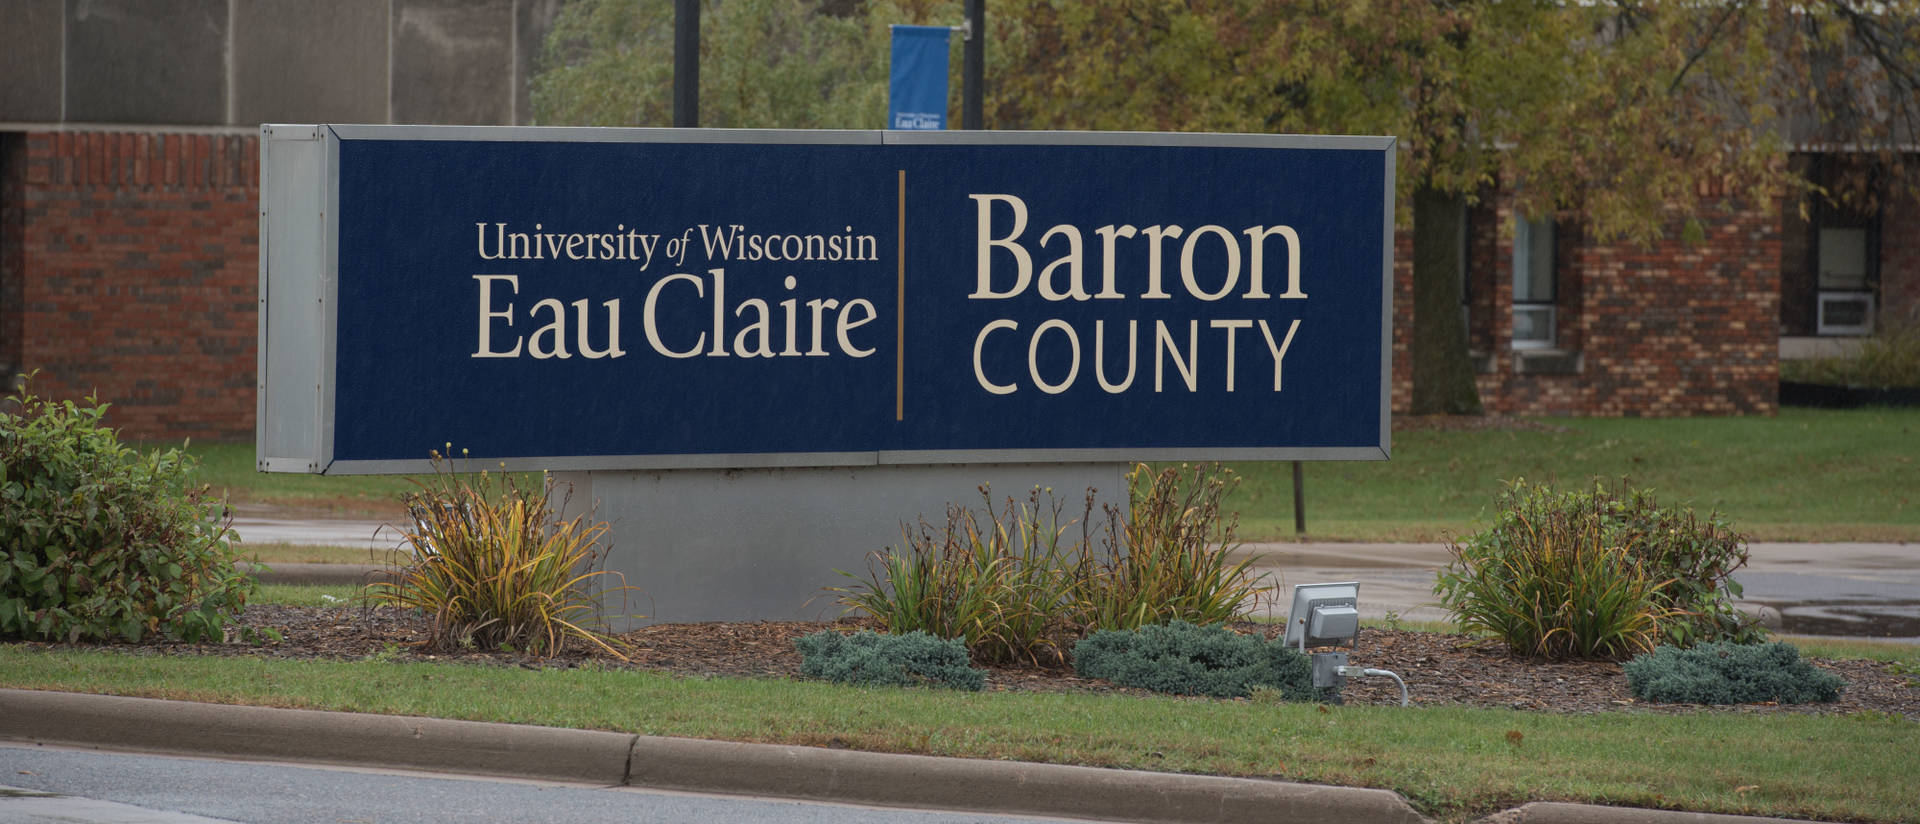 UW-Eau Claire – Barron County campus sign.